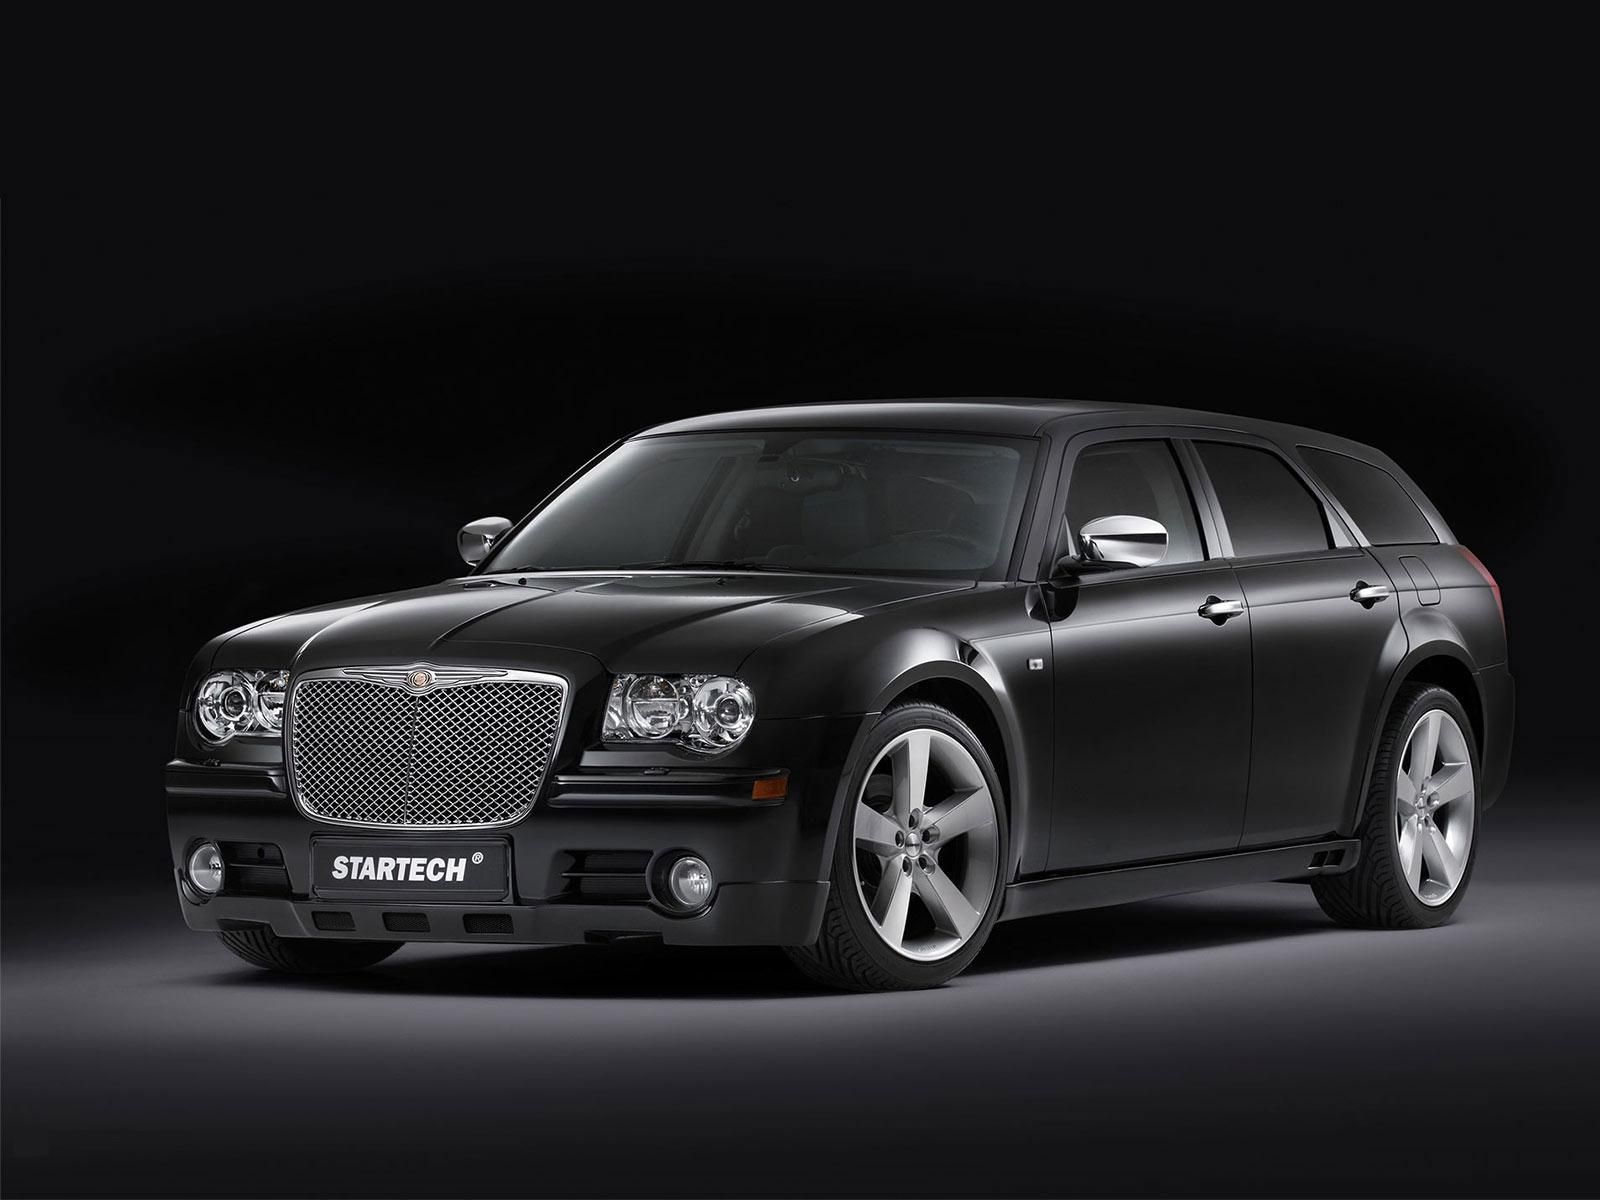 chrysler 300 wagon looks just like my dodge magnum with. Black Bedroom Furniture Sets. Home Design Ideas